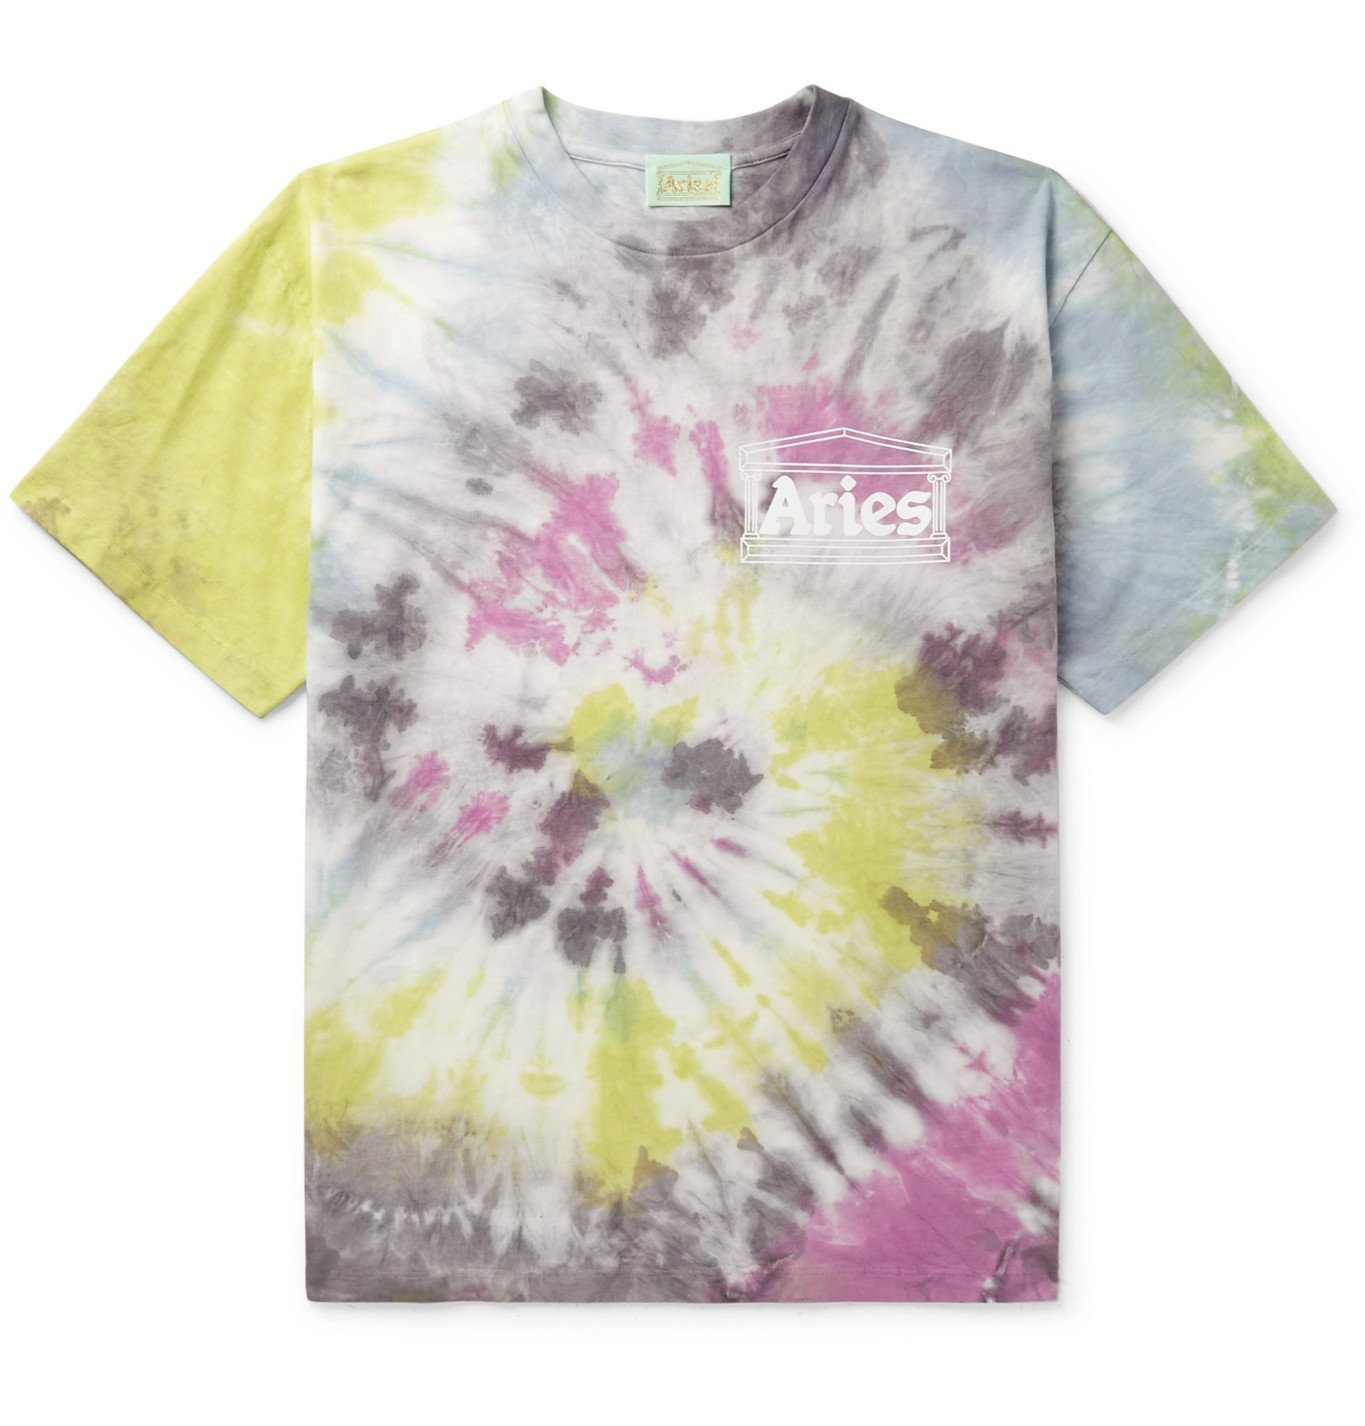 ARIES - Temple Logo-Print Tie-Dyed Cotton-Jersey T-Shirt - Multi